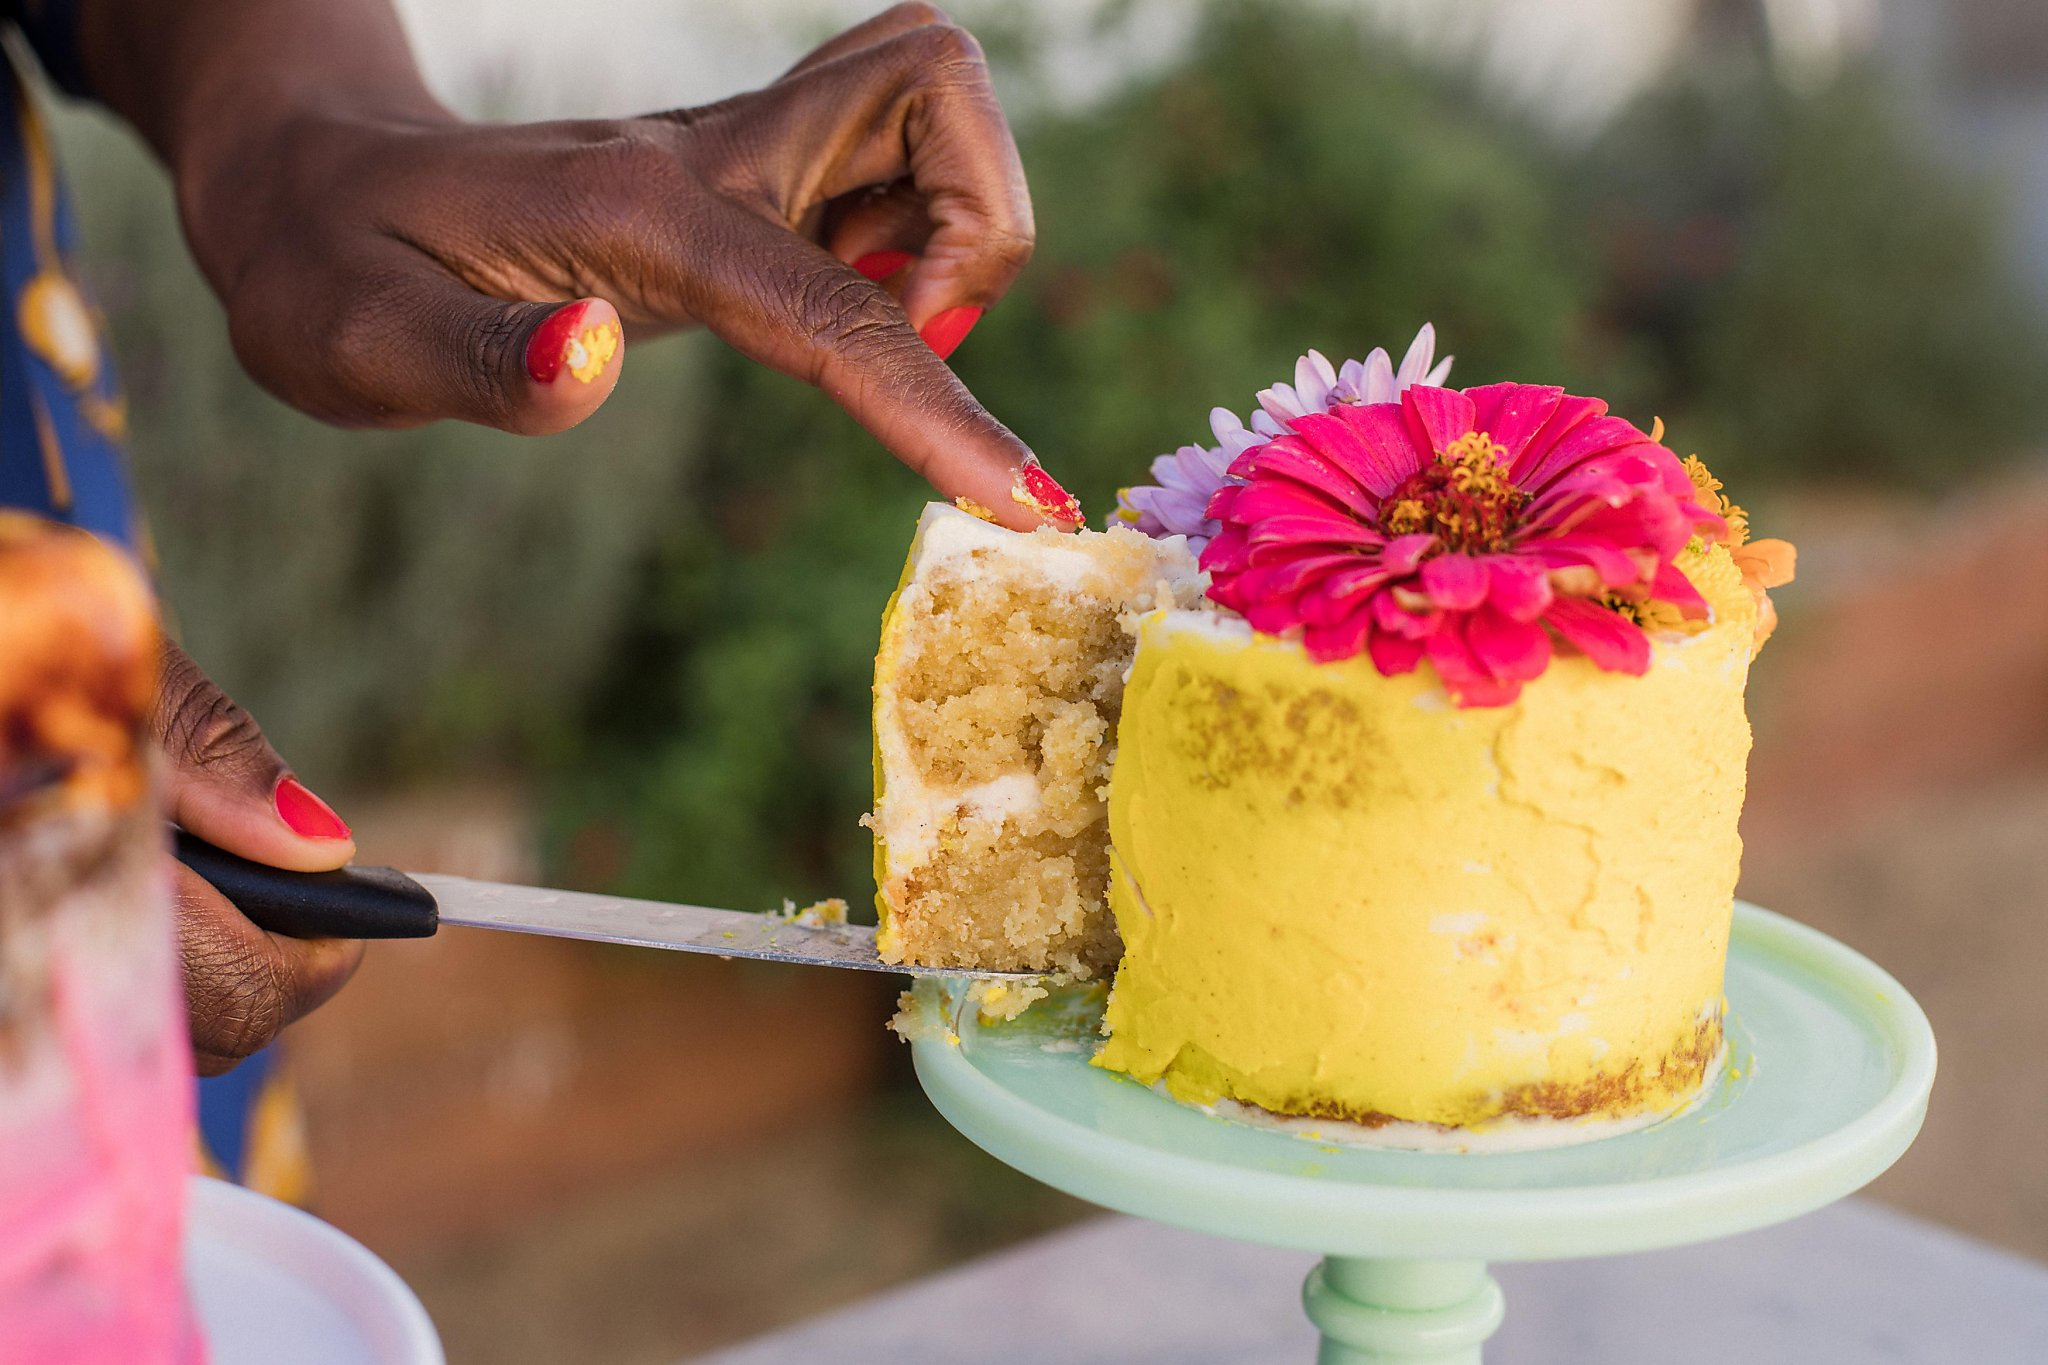 This Oakland bakery's showstopping floral cakes combine California produce with Black food culture